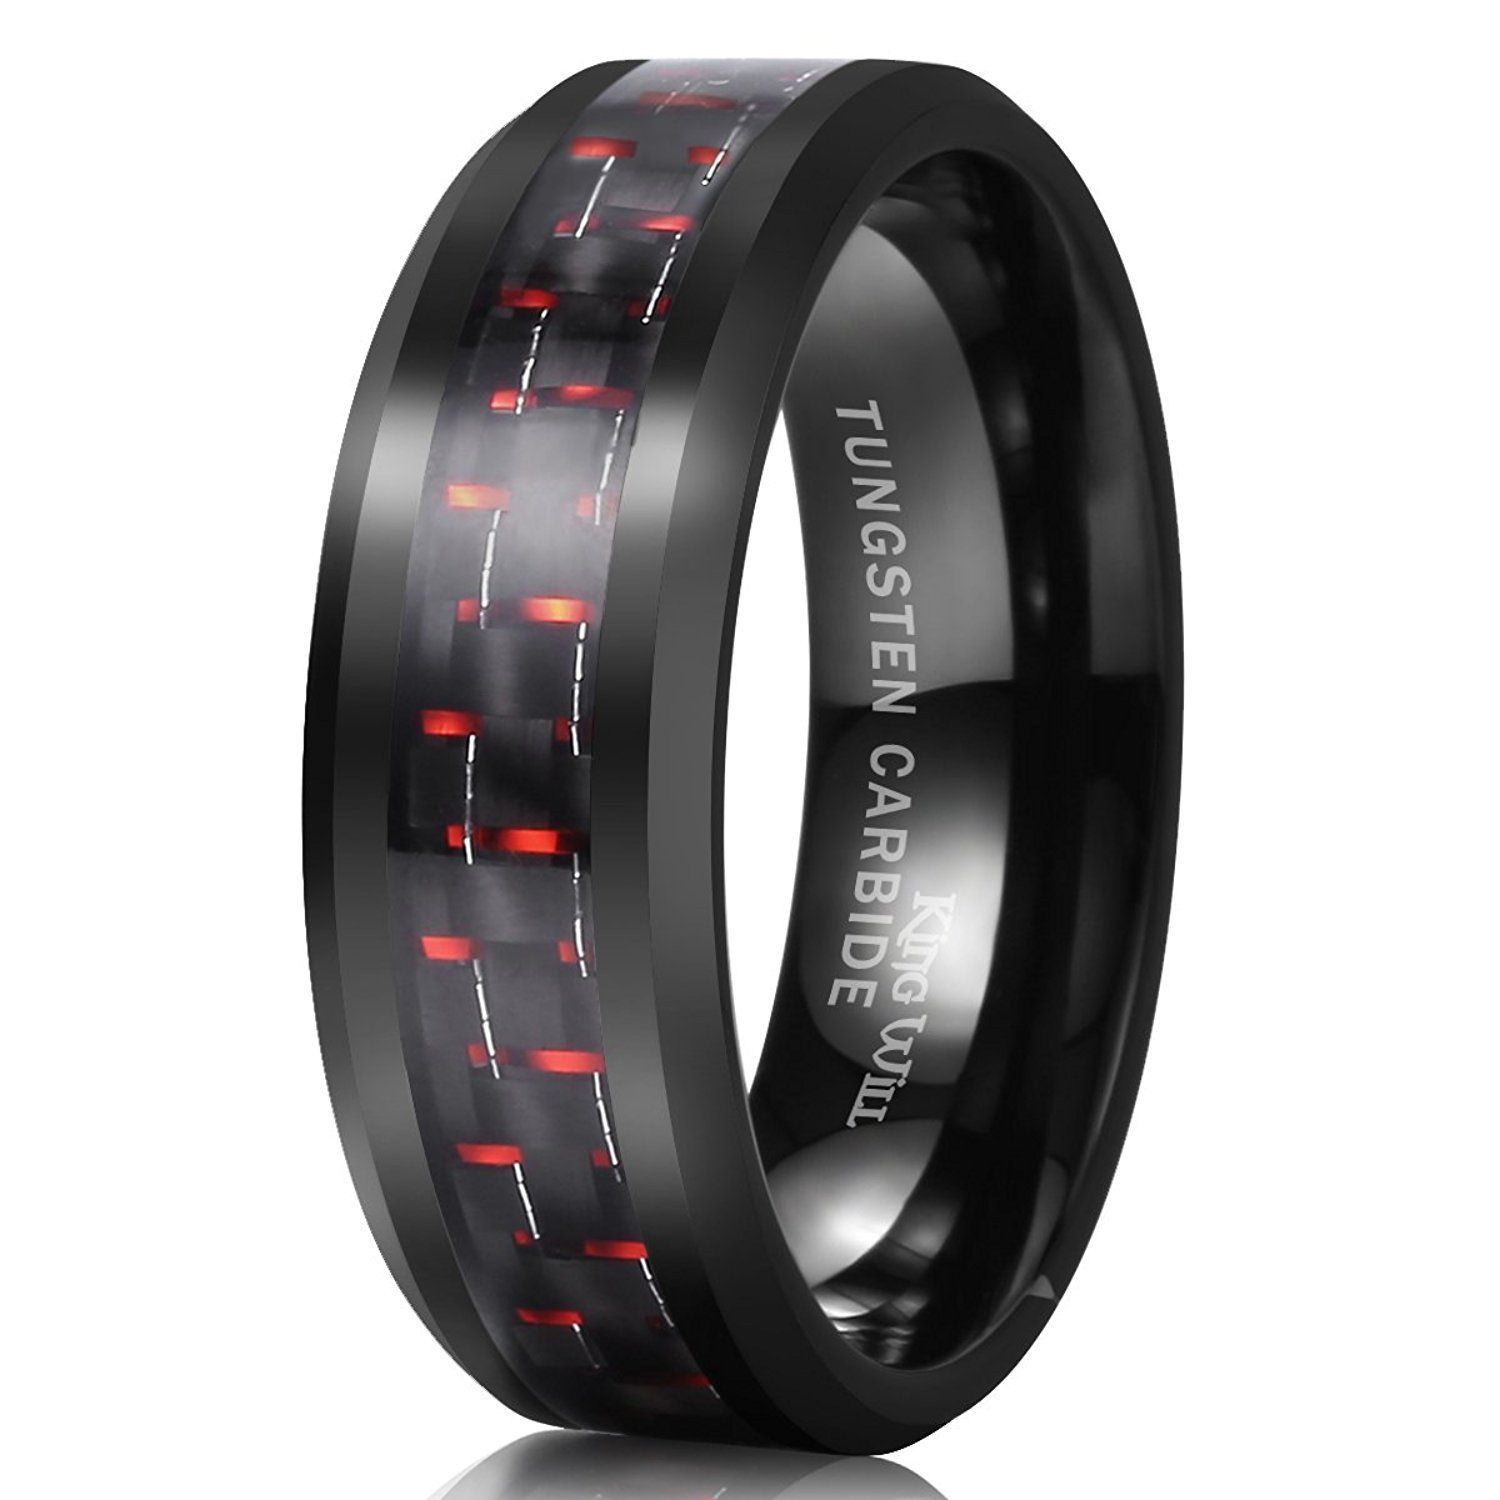 gnex mens tungsten men fiber inlay wedding promise bands from jewelry ring women gnexleds size black product engagement carbide rings carbon loves